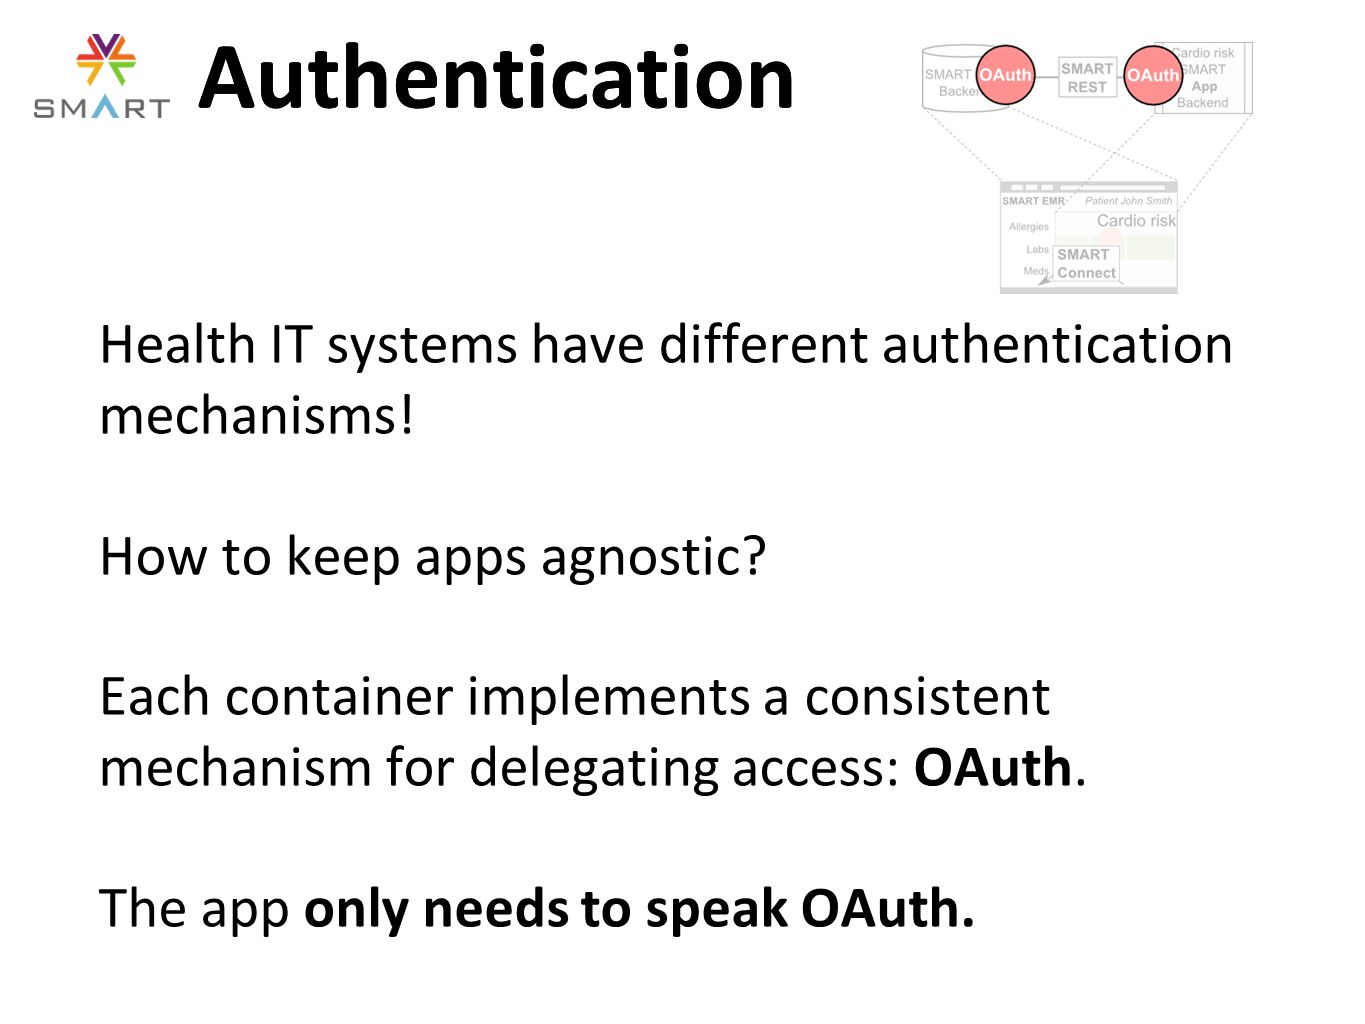 Health IT systems have different authentication mechanisms! How to keep apps agnostic? Each container implements a consistent mechanism for delegating